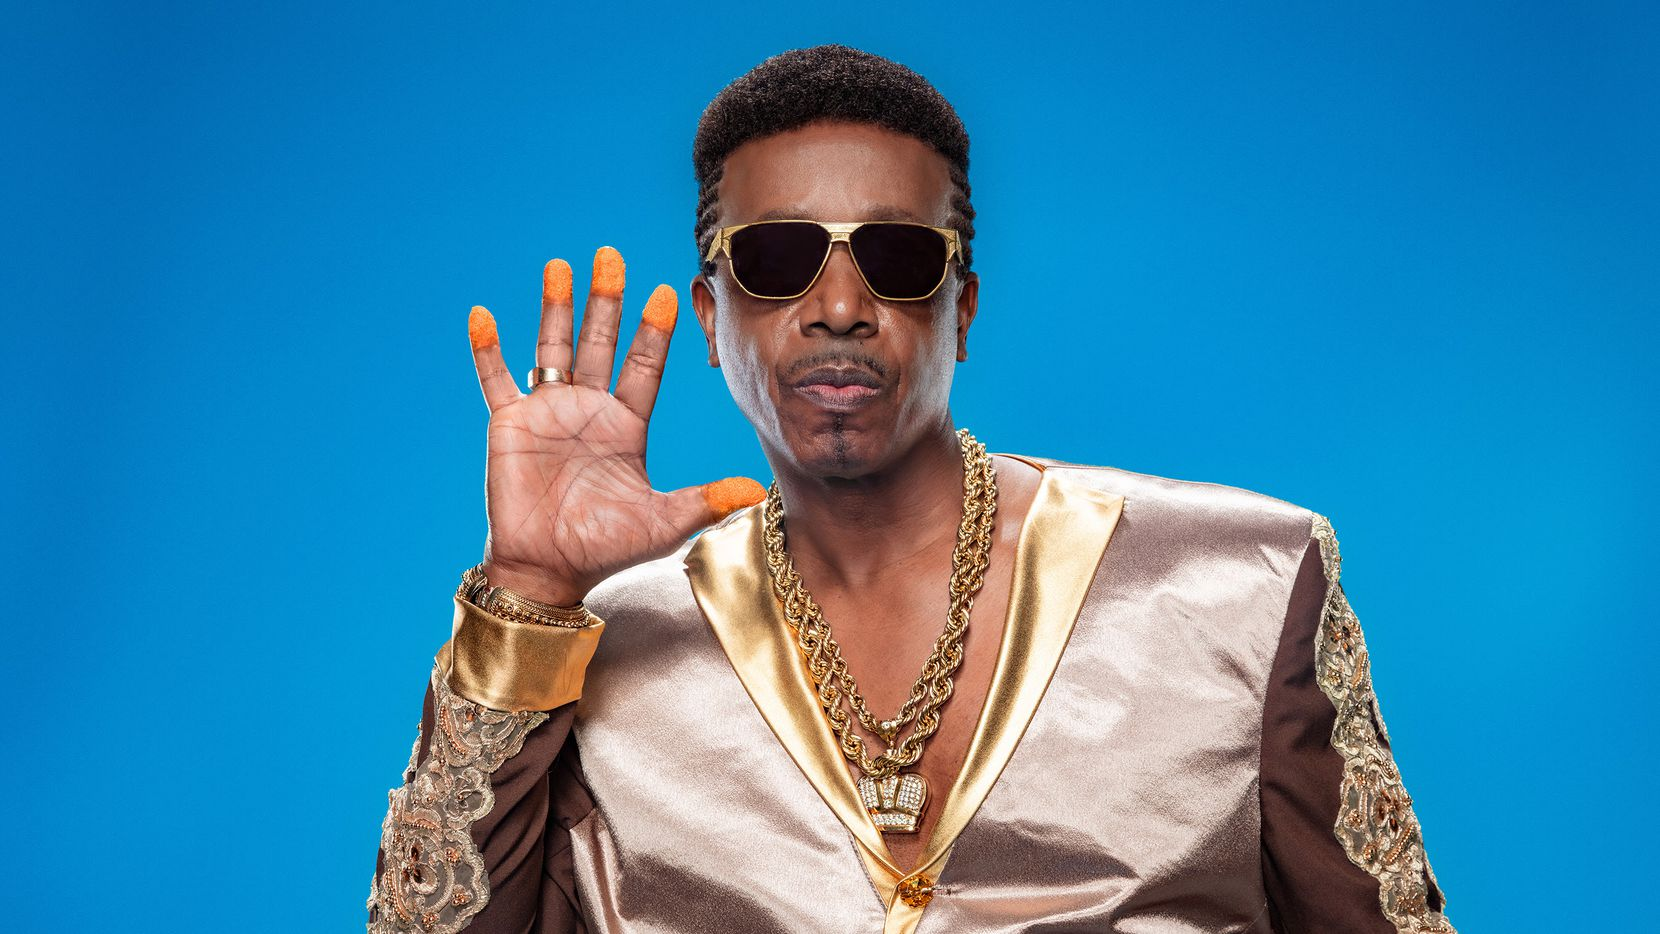 """Cheetos is back with a 2020 Super Bowl ad for the first time in more than a decade and its bringing back rap icon MC Hammer and his famous """"U Can't Touch This"""" song."""